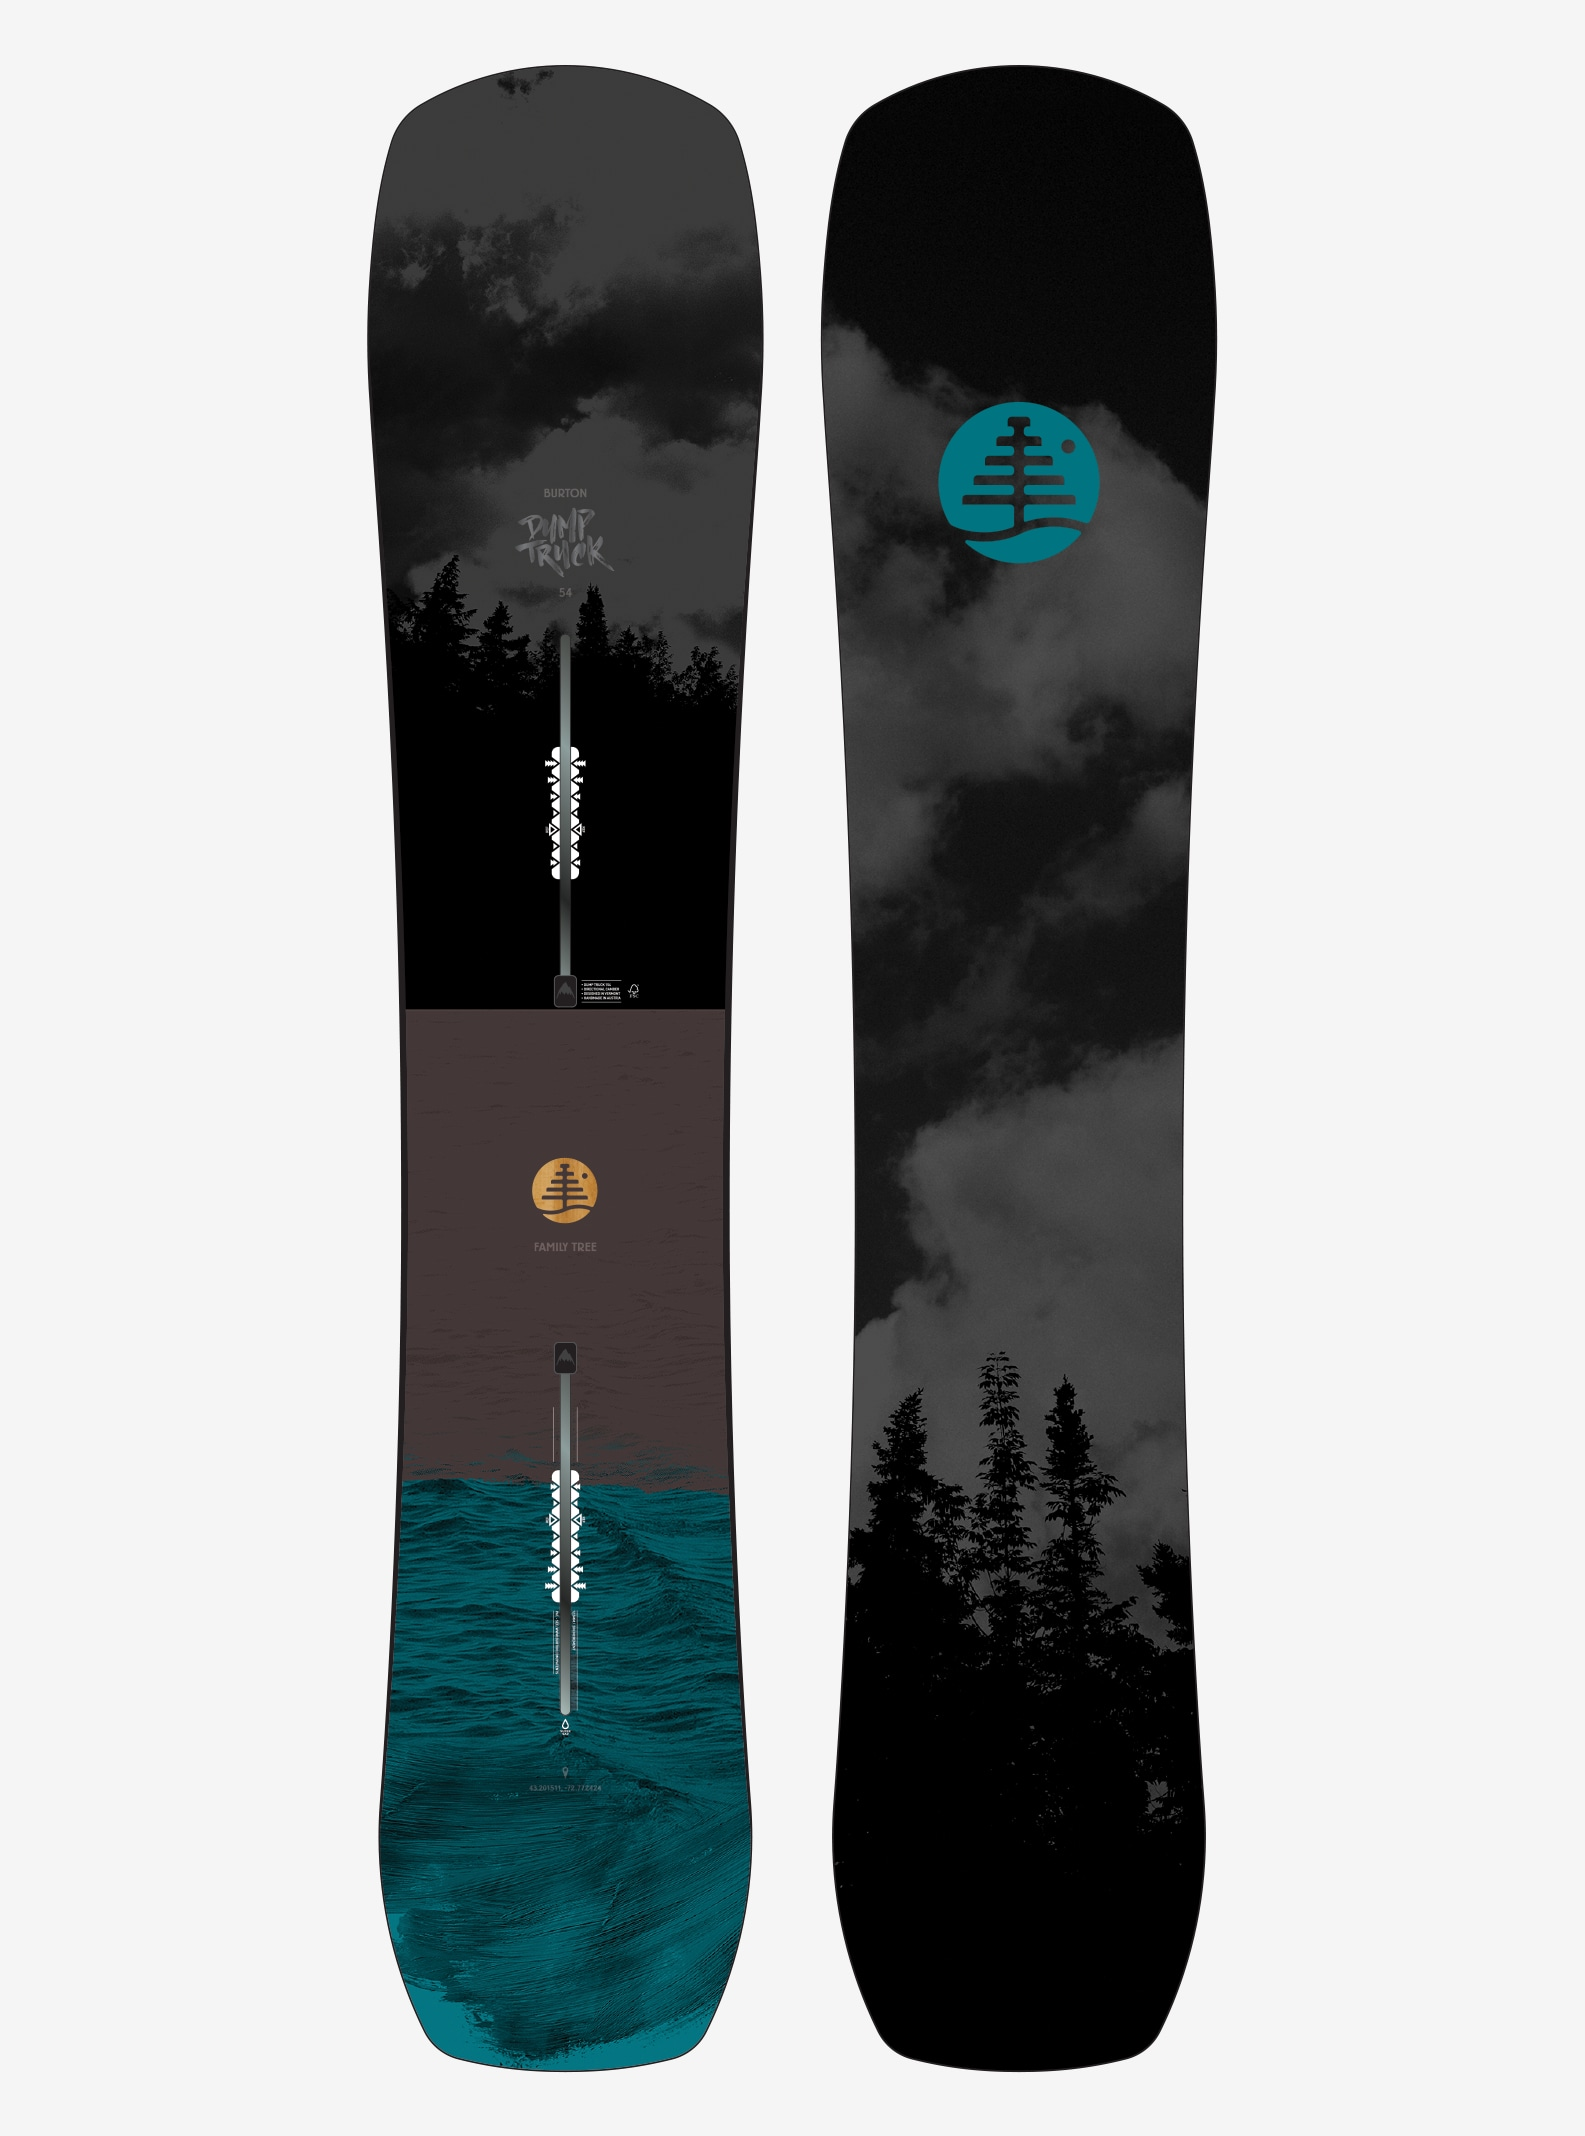 Men's Burton Family Tree Dump Truck Snowboard shown in 154